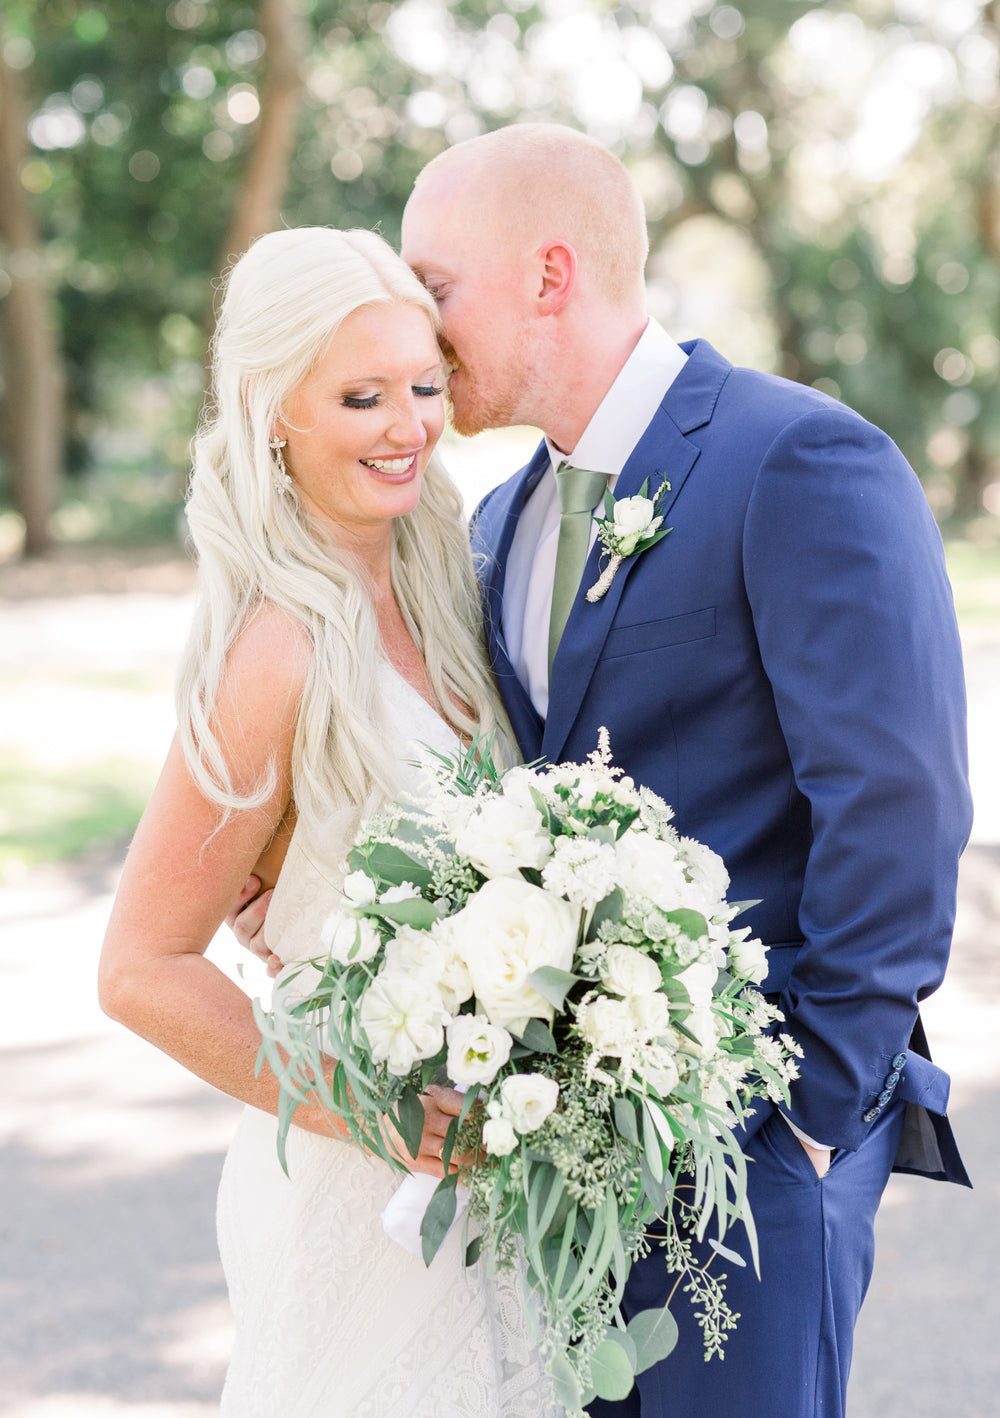 {{ article.title }} - Real Weddings by The Groomsman Suit